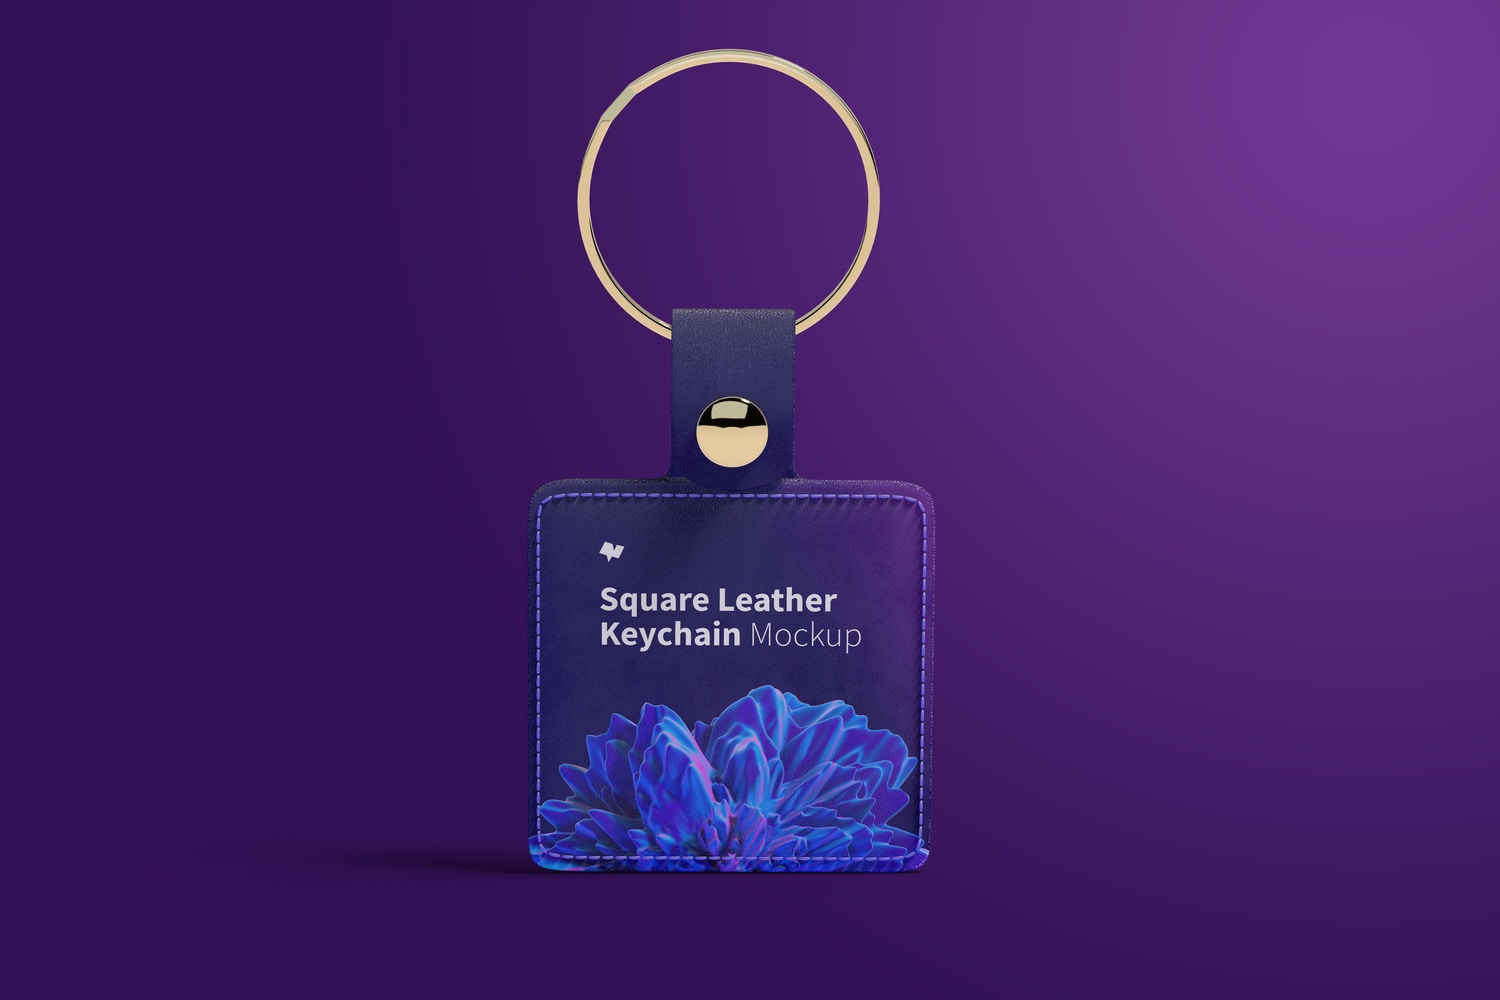 You have two options for the metallic area of the keychain. Be creative and make innovative combinations.